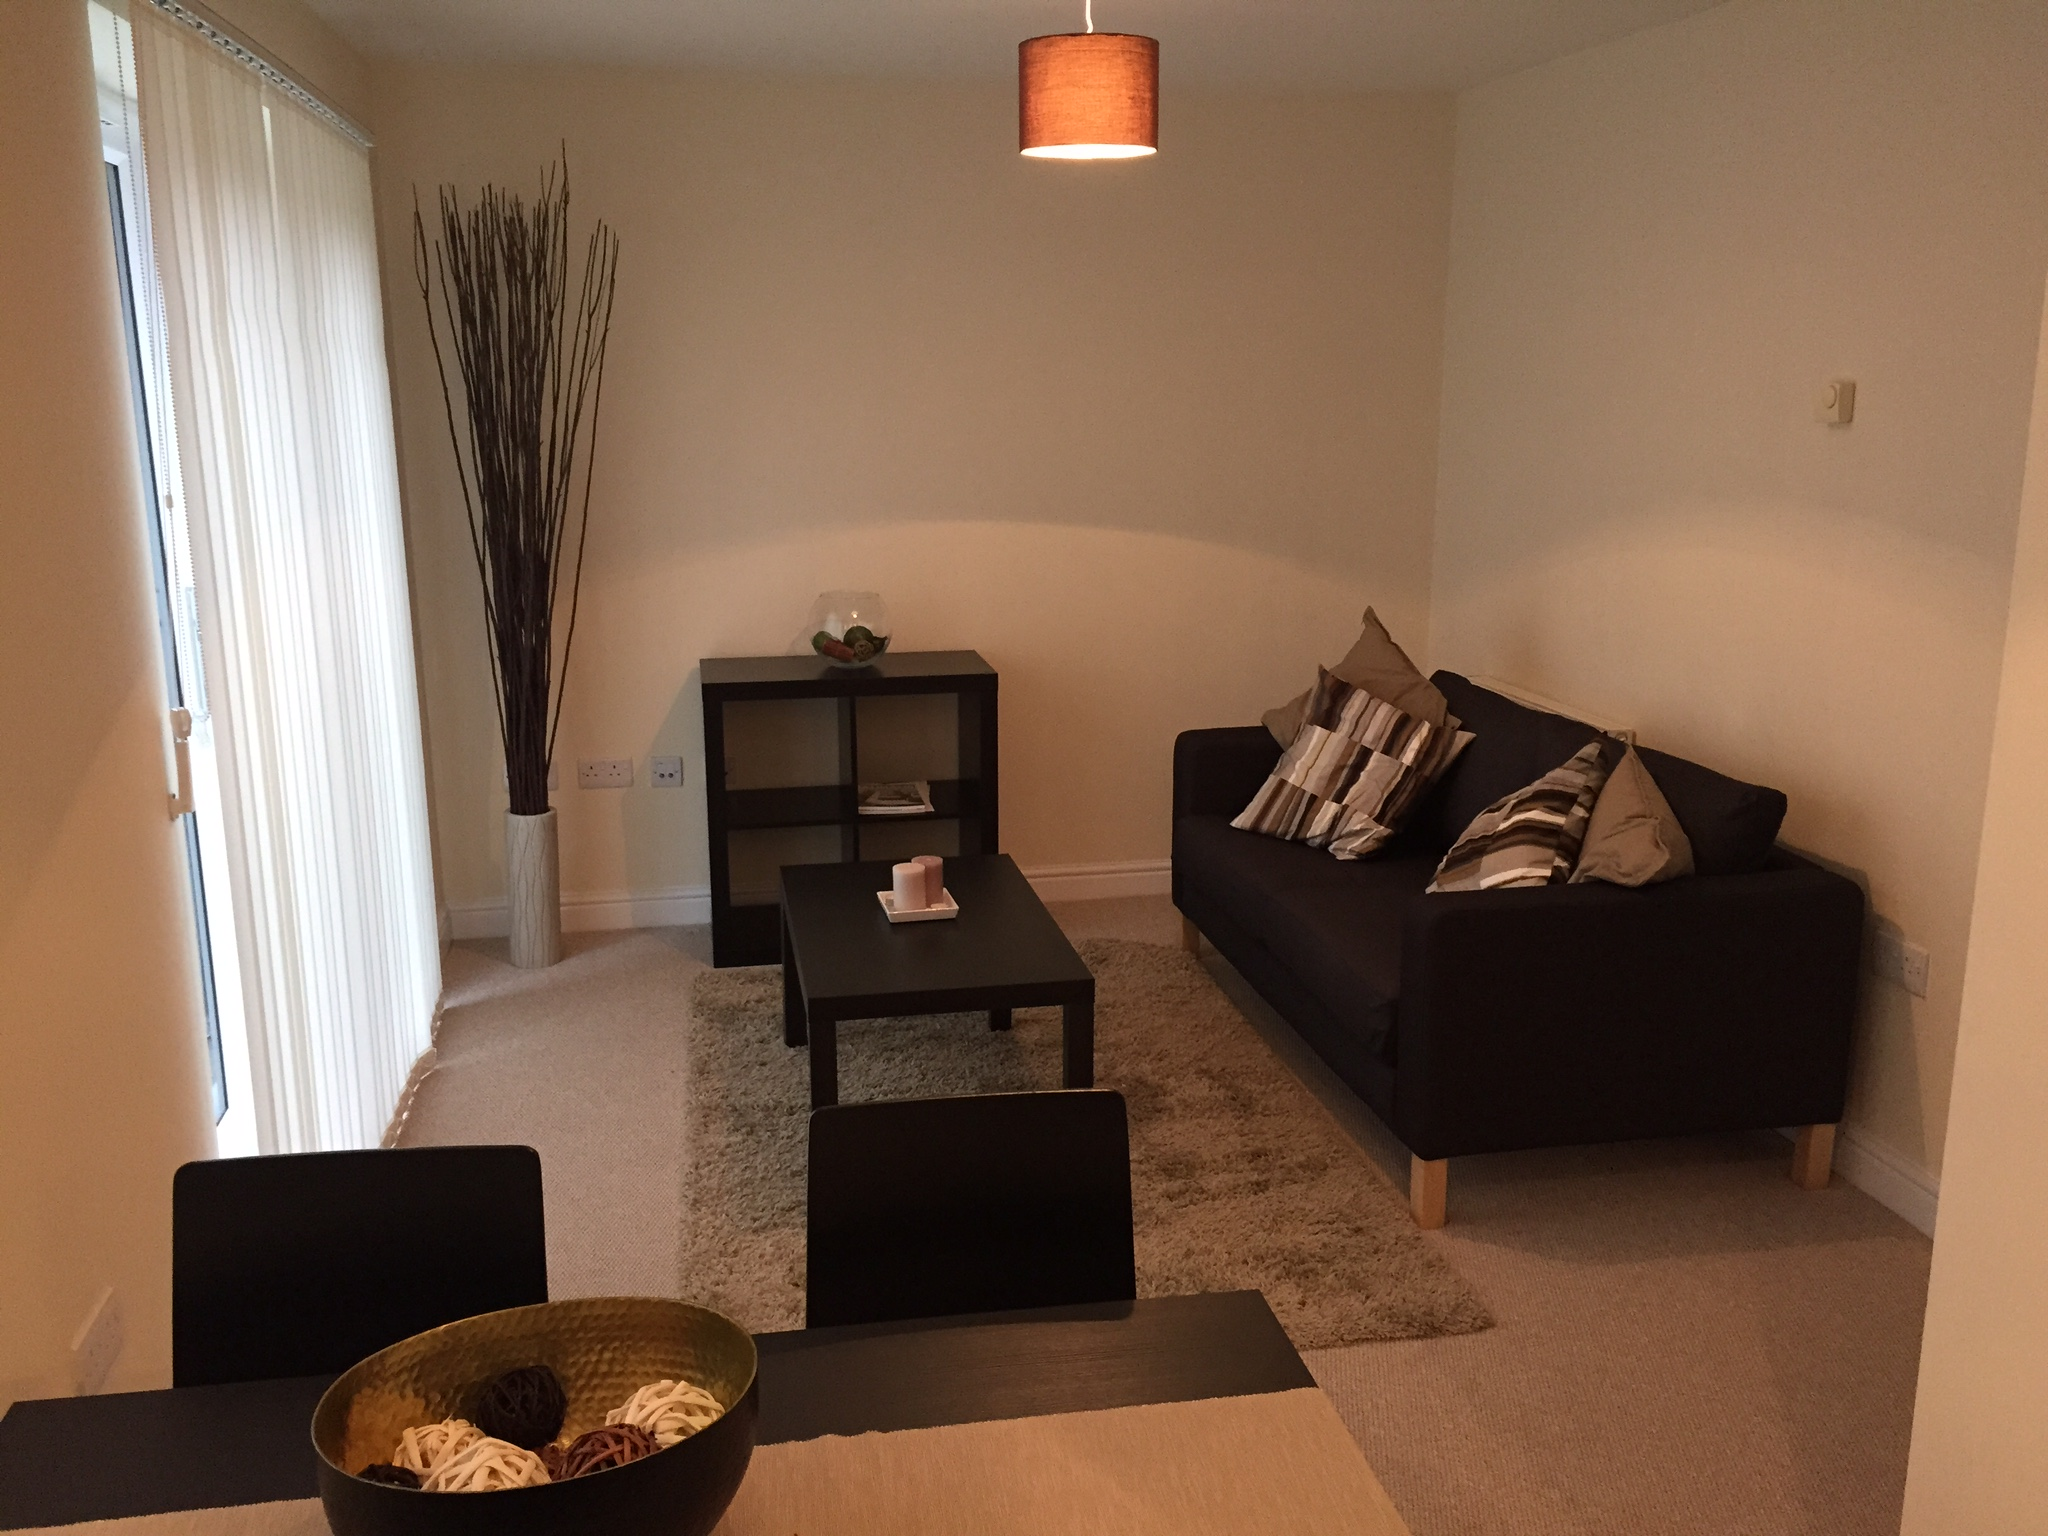 2 bedroom house for rent private landlord in slough. 2 bedroom unfurnished ground flat to rent on elliman avenue, slough, berkshire, sl2 house for private landlord in slough r